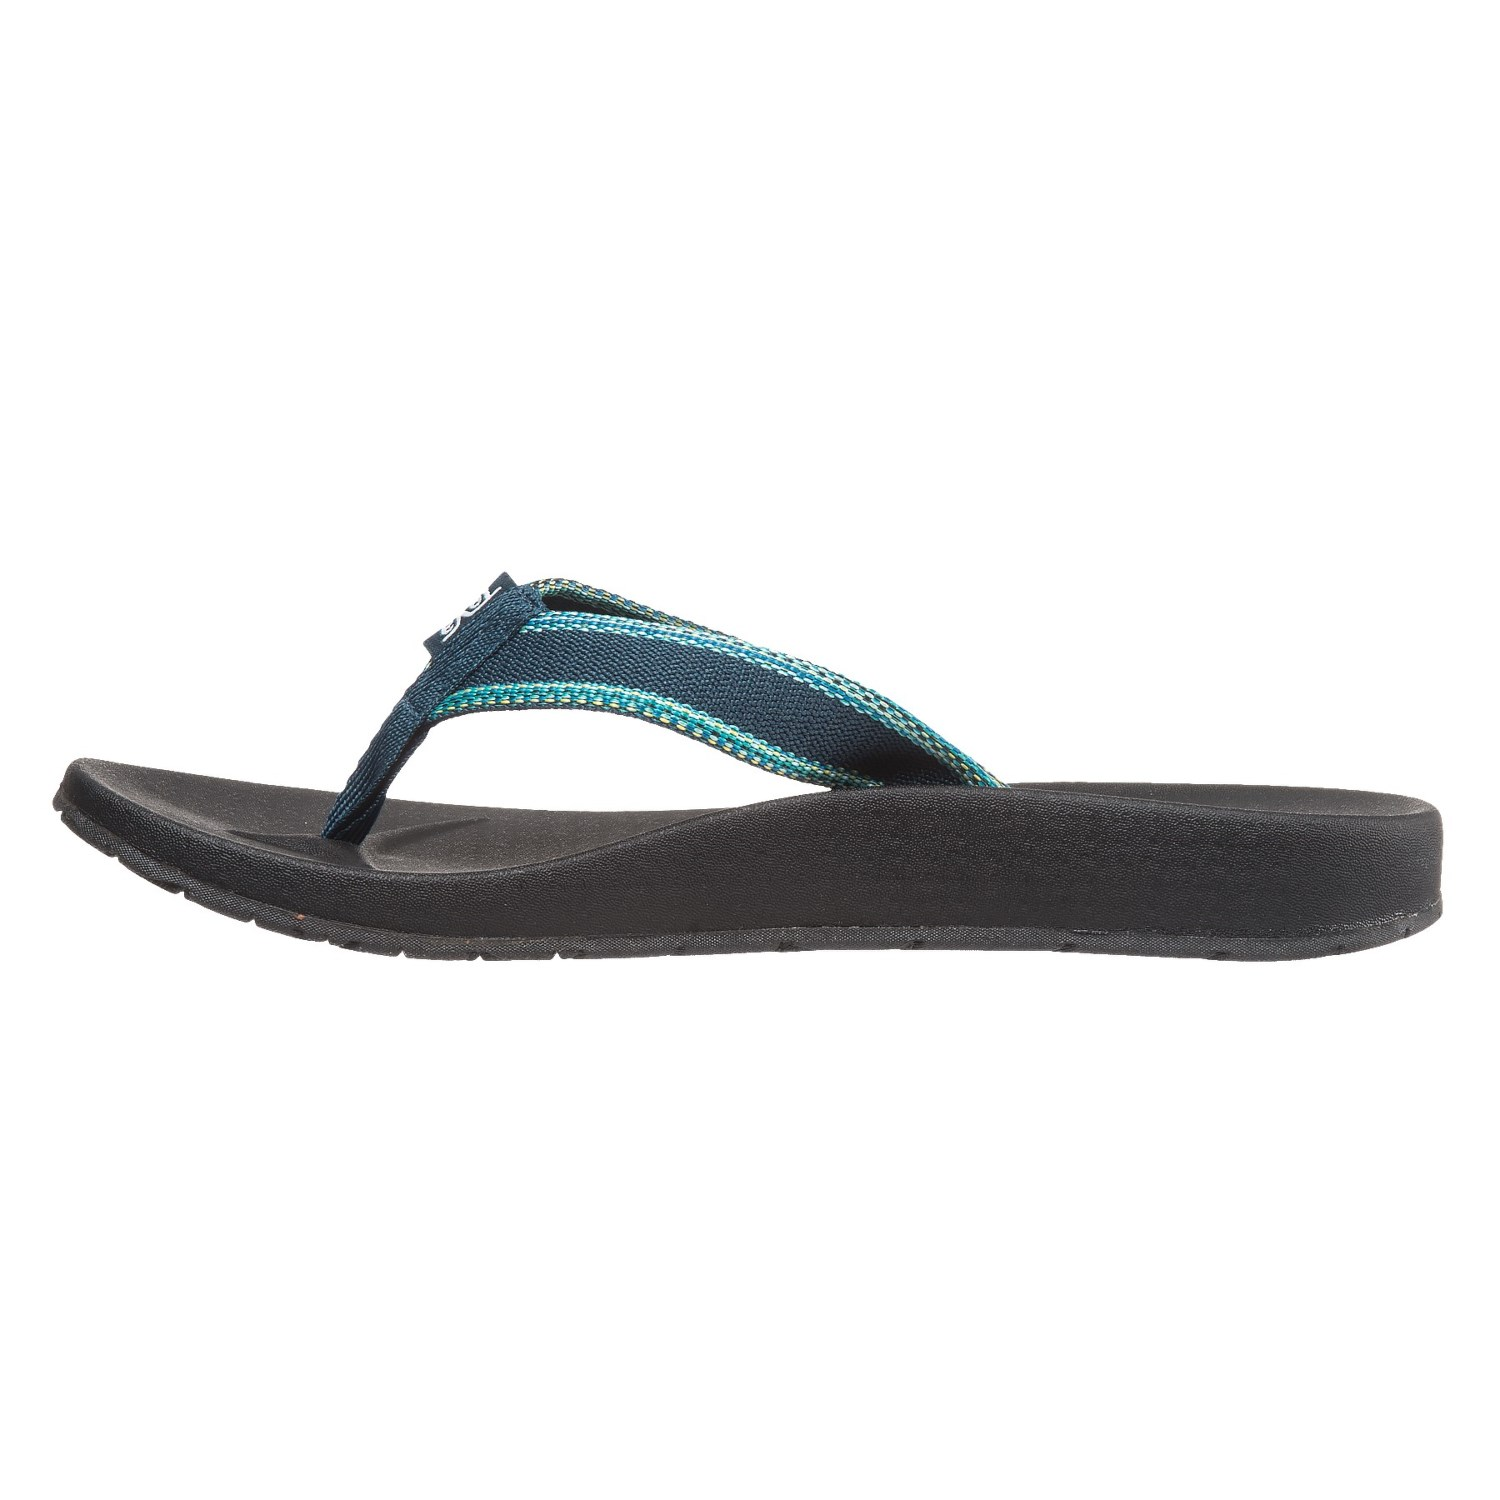 69da55c25 Teva Azure Flip-Flops (For Women) - Save 62%